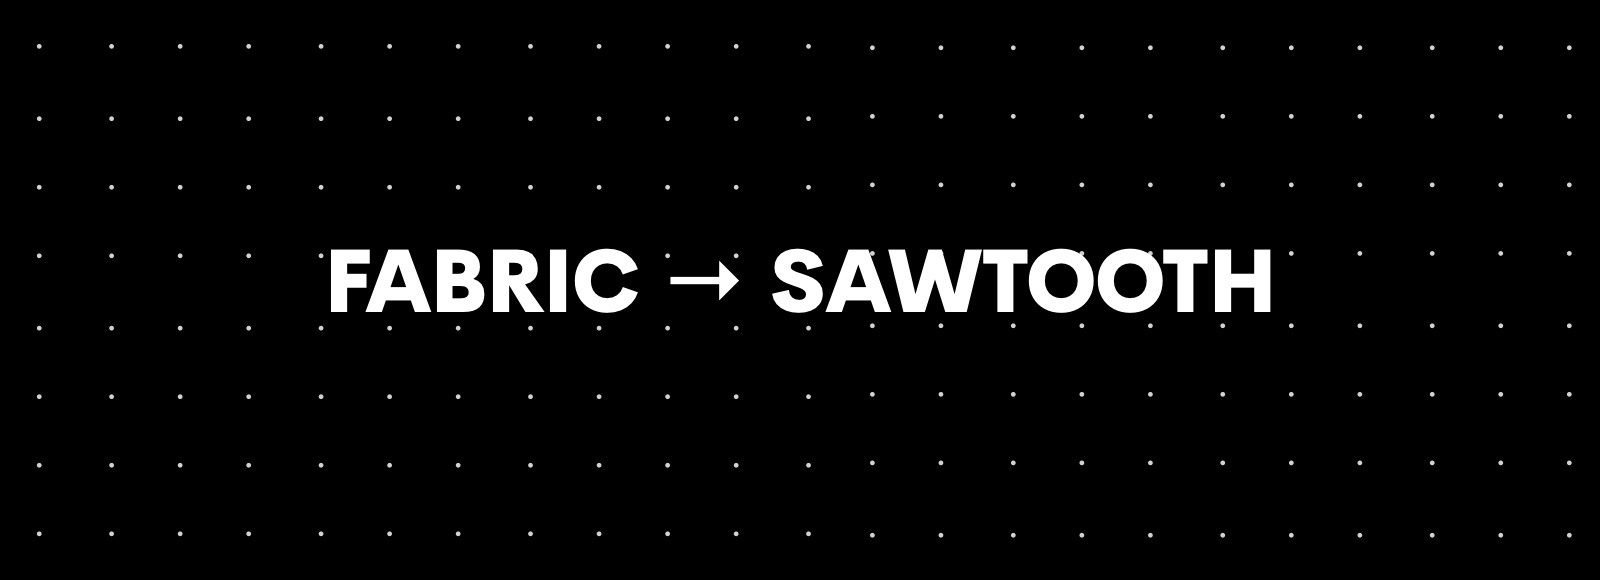 Know Hyperledger Fabric? Then moving to Sawtooth is easy